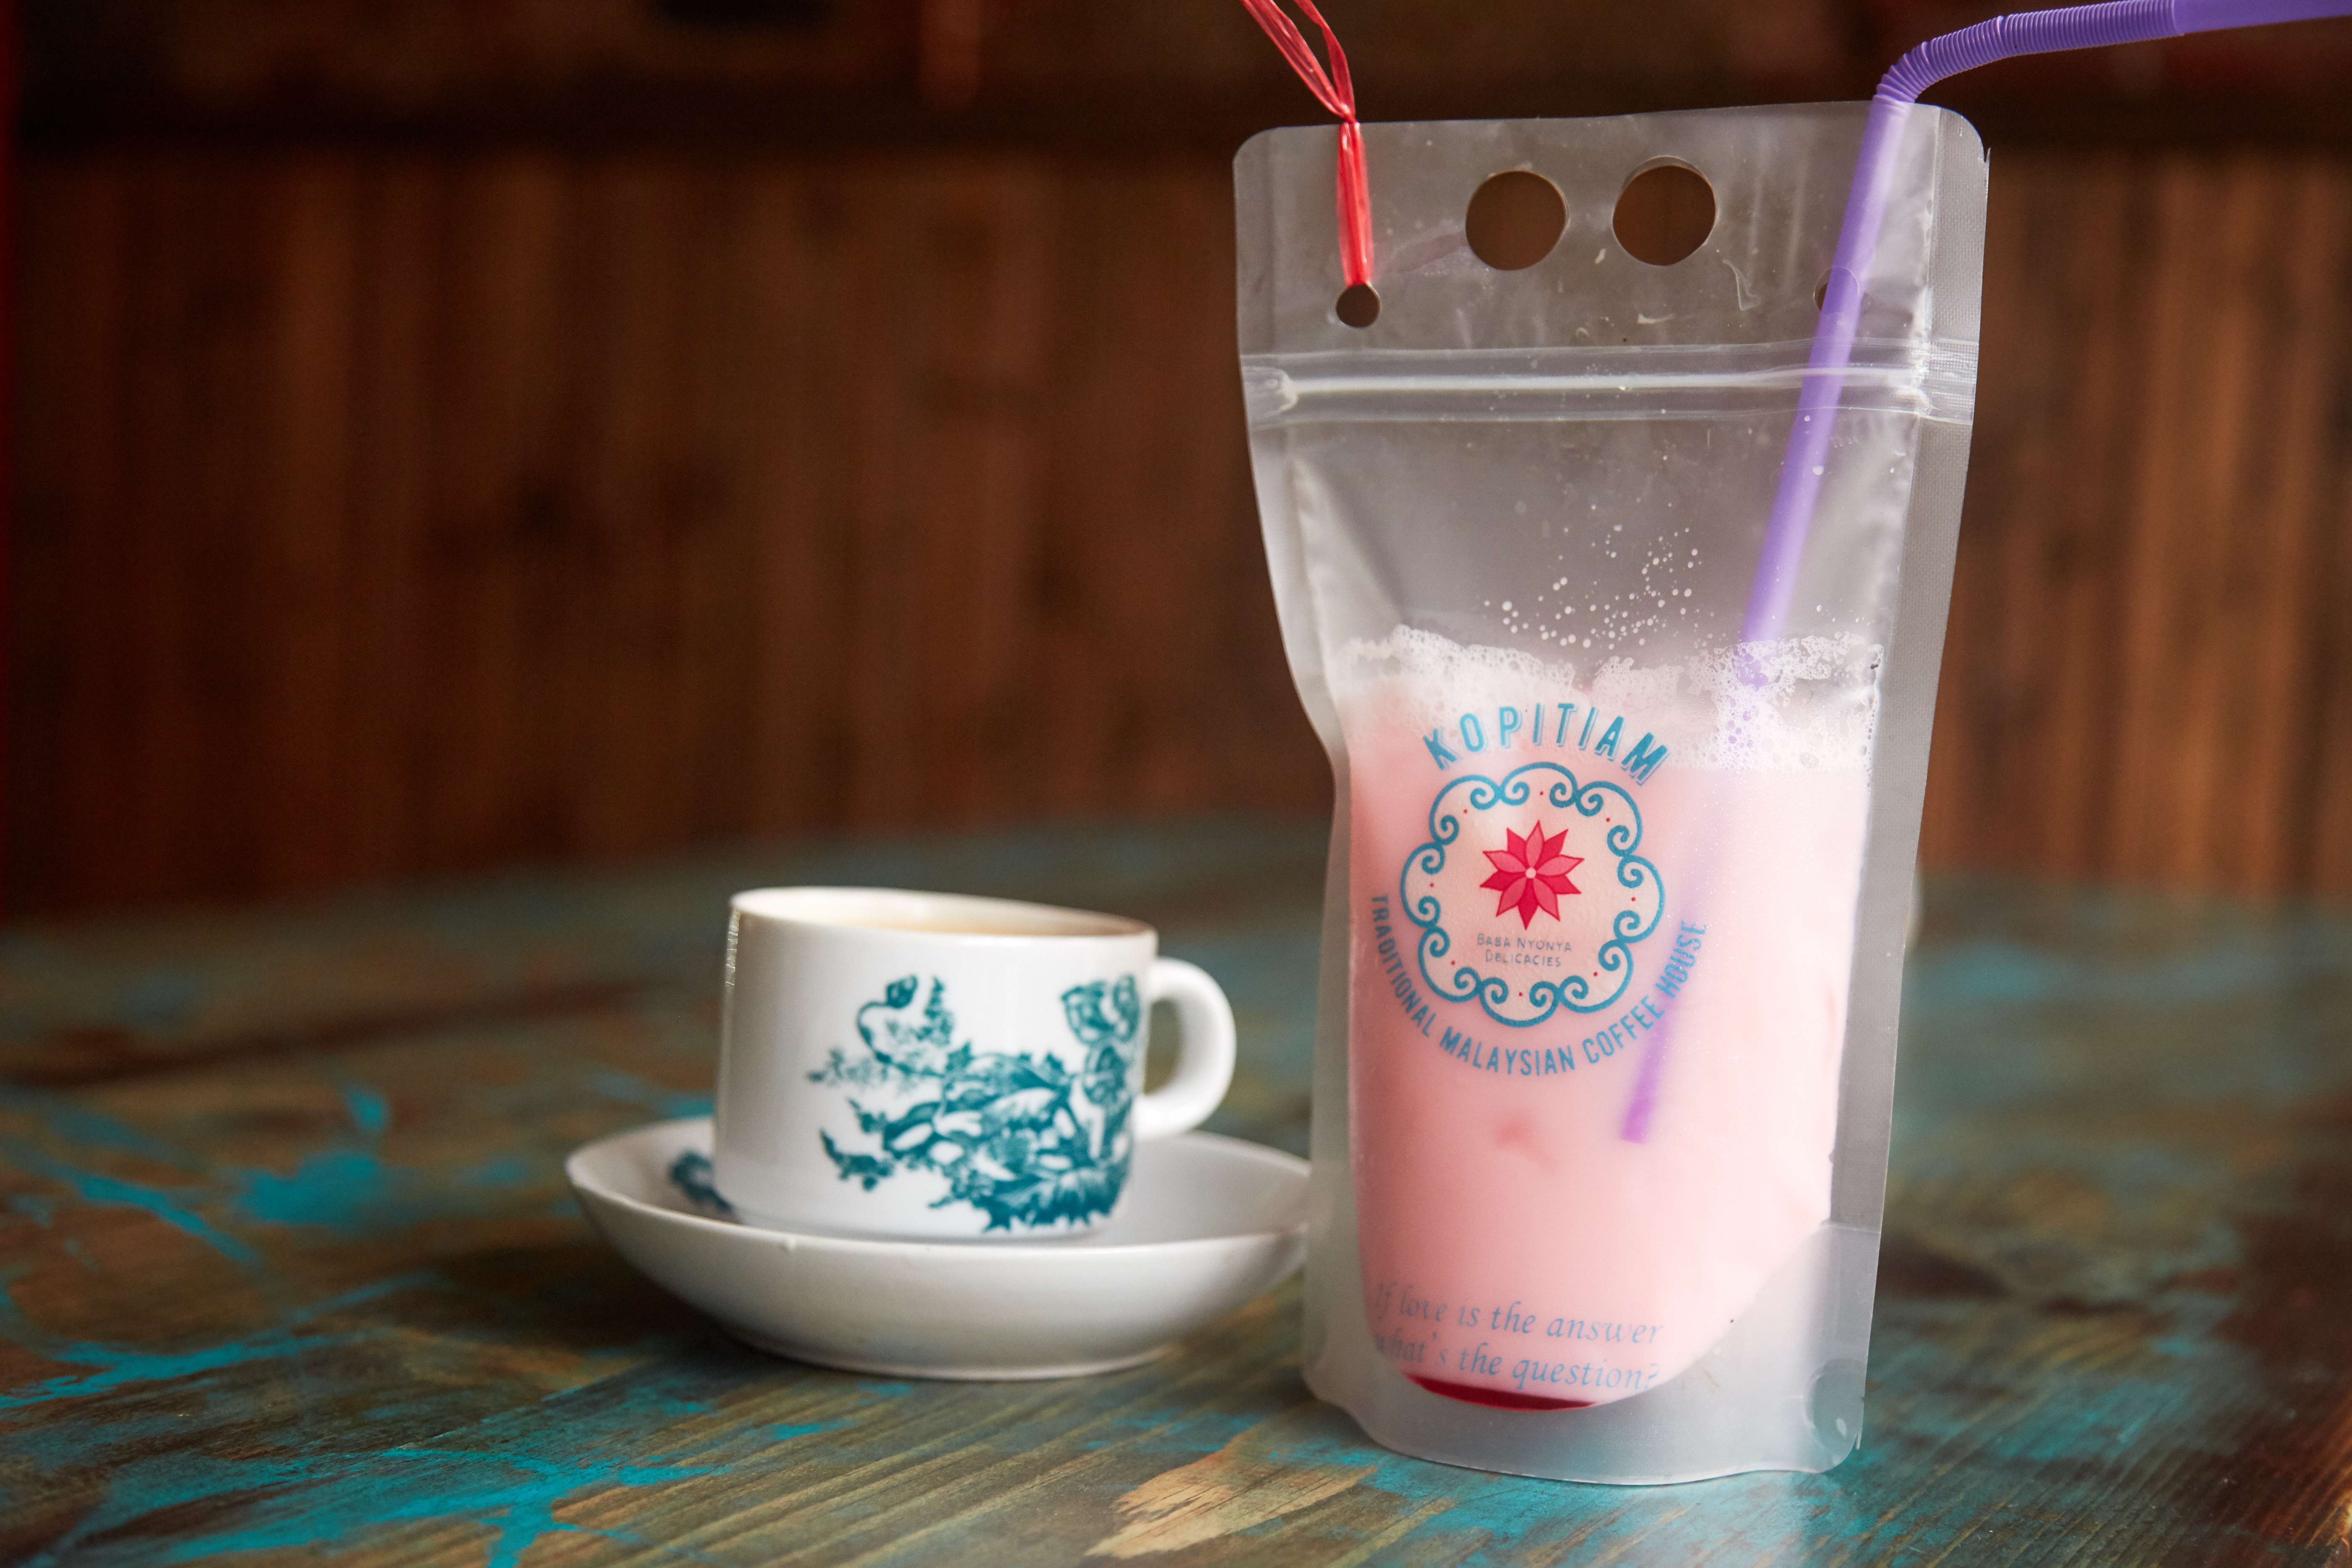 A clear plastic bag, labeled with the red and light blue logo of NYC's Kopitiam, is full of light pink liquid. It sits on a stripped wooden table next to a white teacup and saucer decorated with blue flowers.